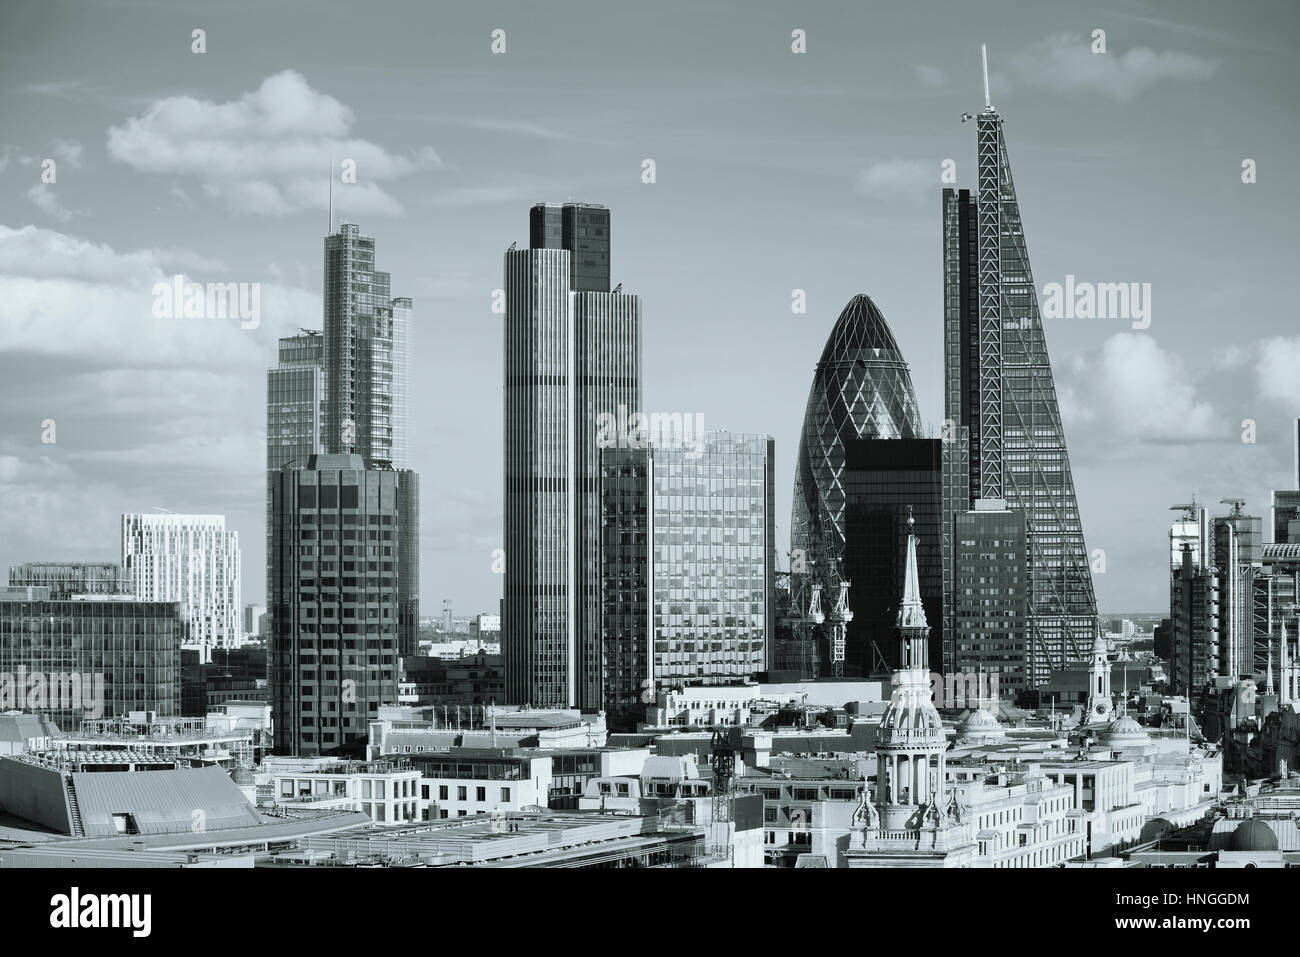 London city rooftop view with urban architectures. - Stock Image